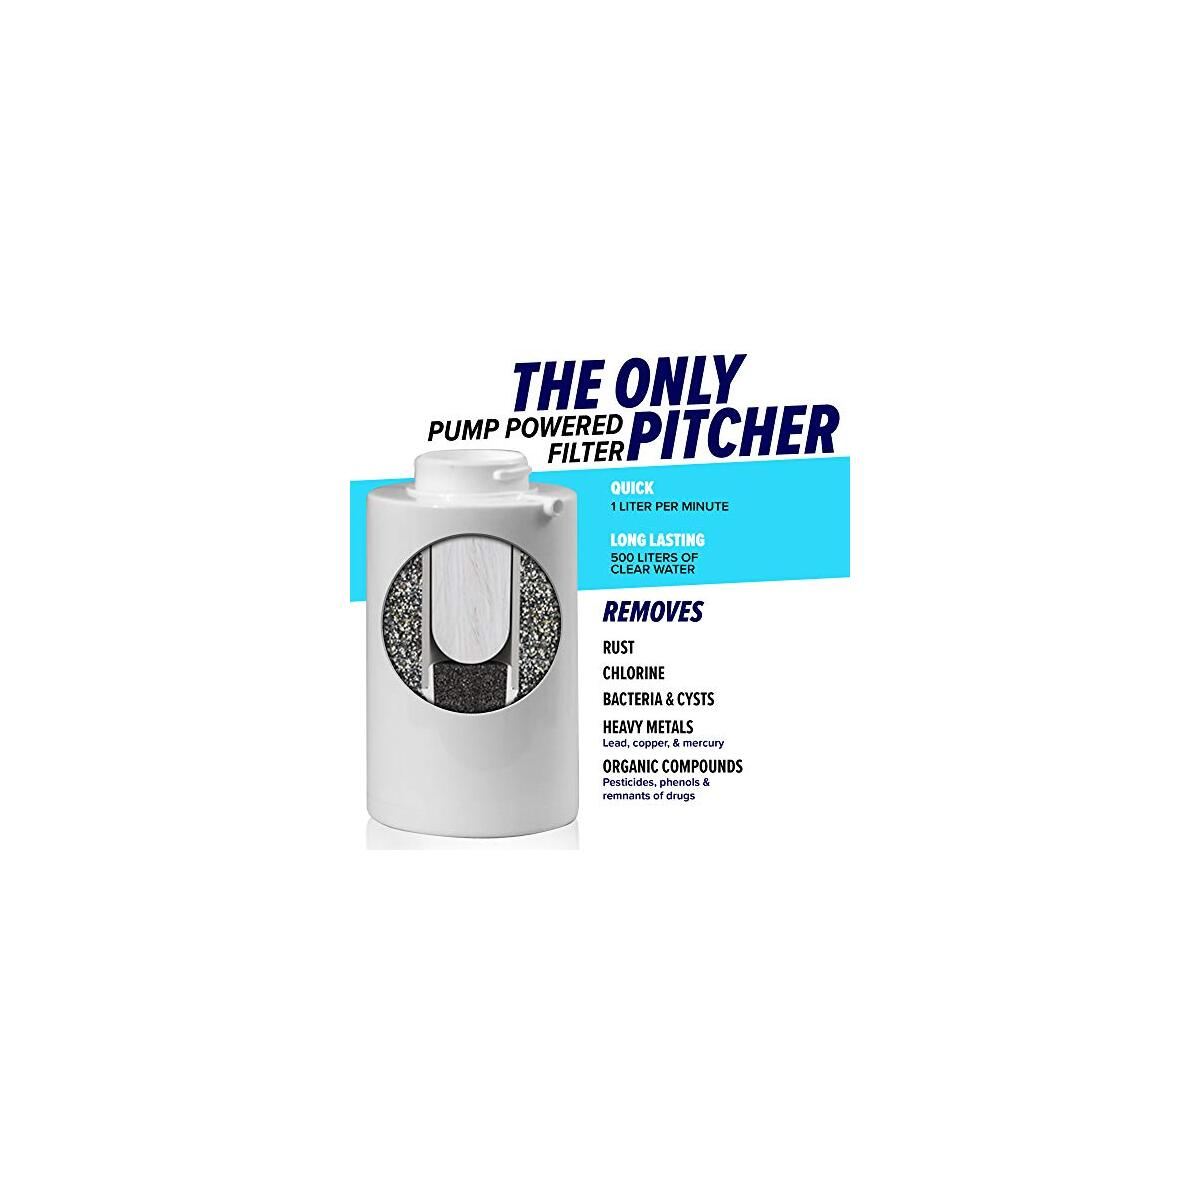 Nakii Pitcher Water Filter with Pump by Aquaphor – Strongest Water Filtration System On The Market Eliminates Bacteria, Lead, Chlorine, and Other Heavy Metals – Large White/Clear